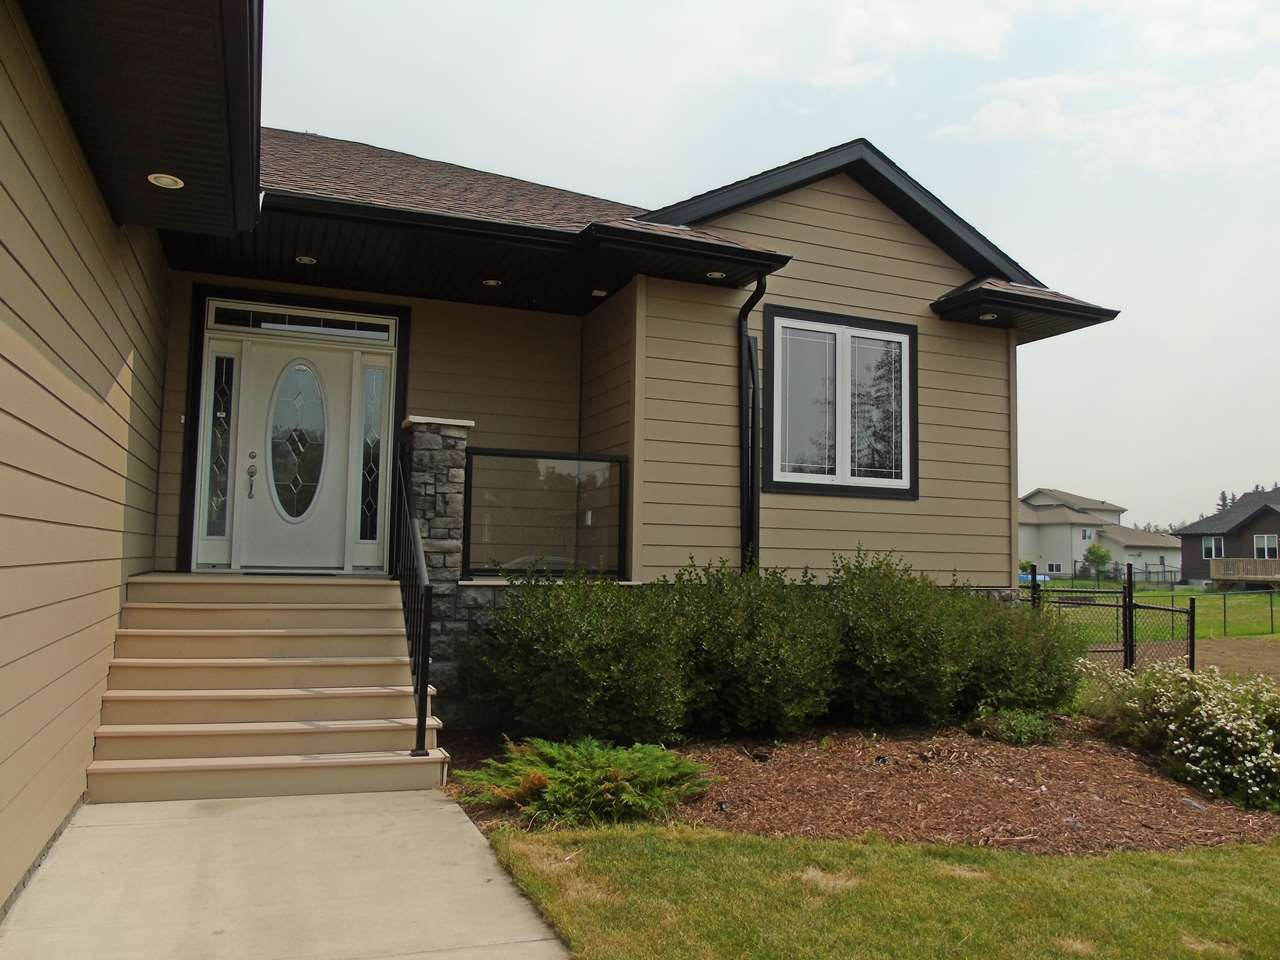 Photo 3: 3621 47 Street: Gibbons House for sale : MLS® # E4074645